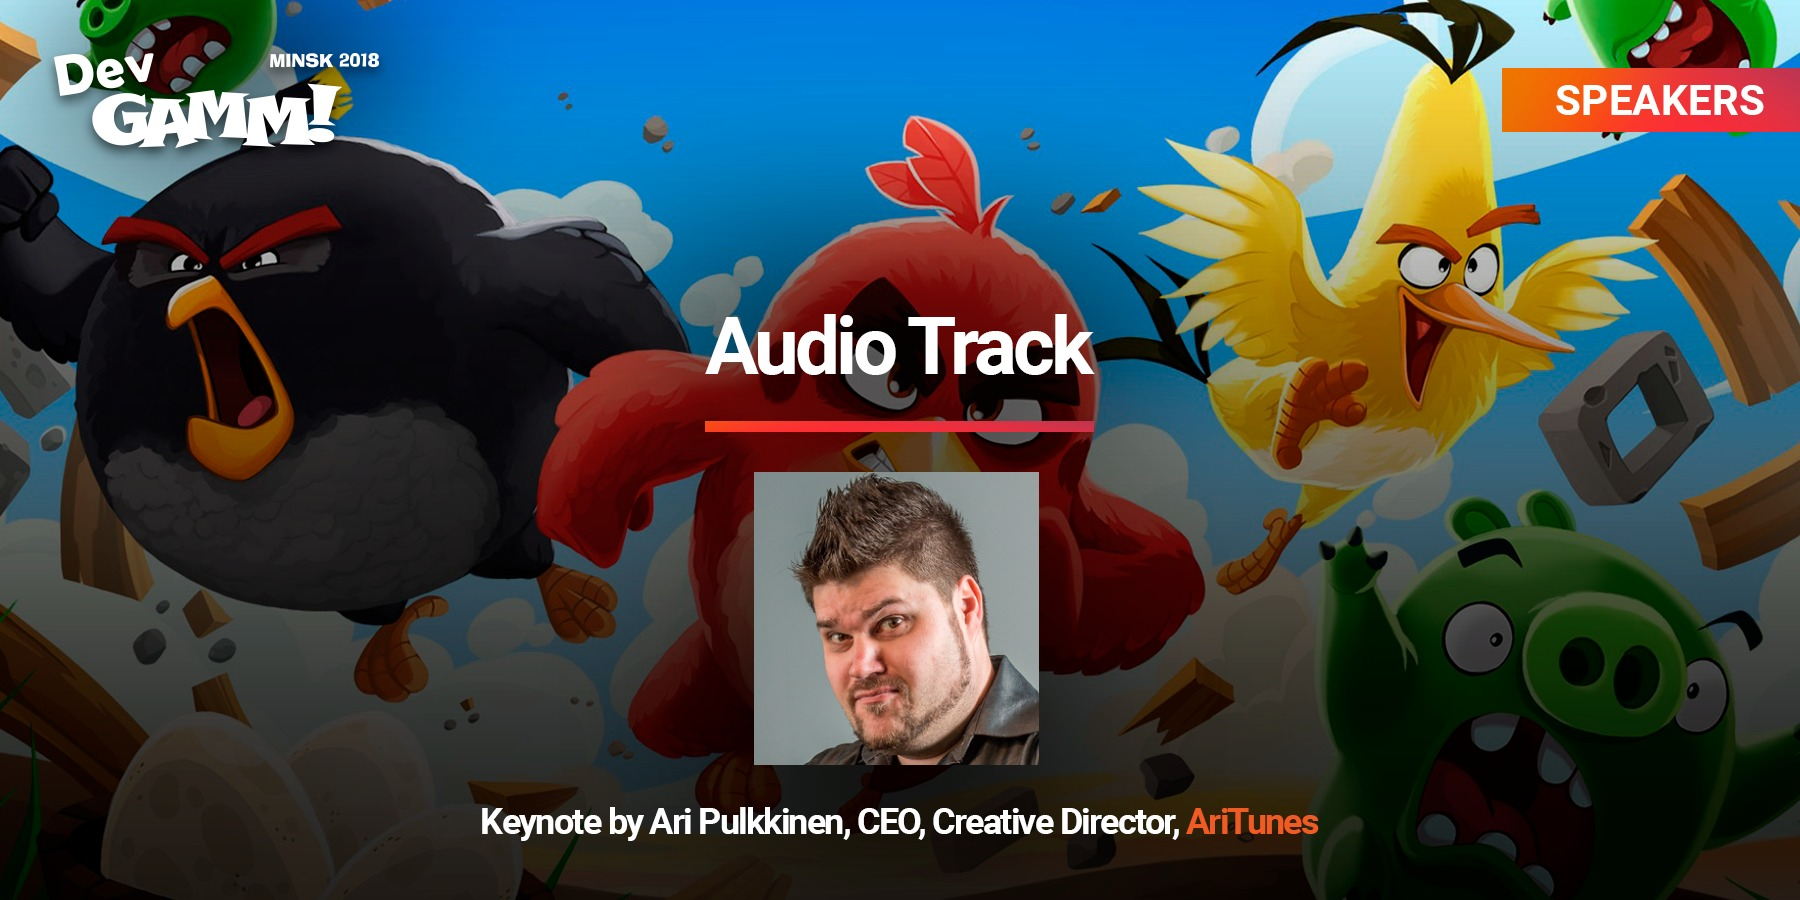 Angry Birds composer's keynote at Audio Track